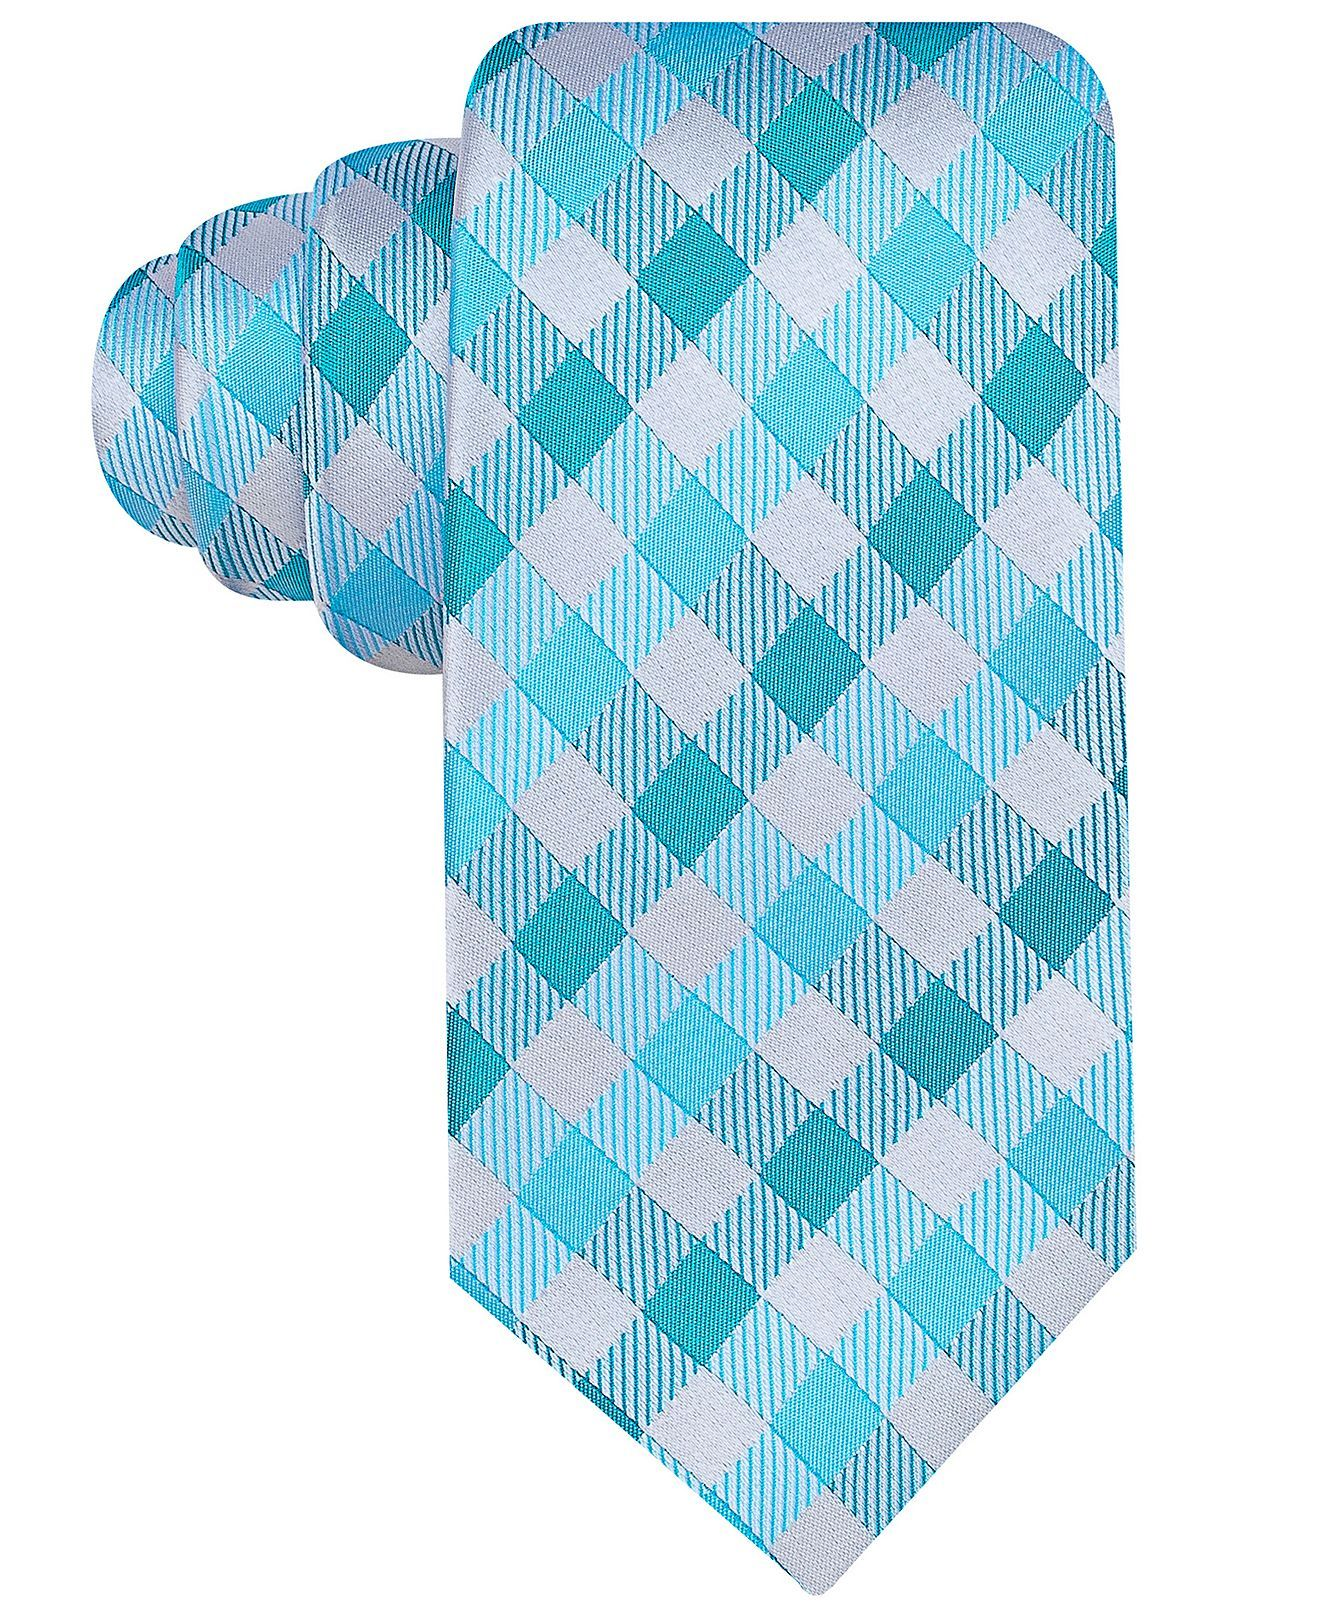 Alfani Spectrum Tie, Gingham - Ties - Men - Macy's | Hmmm ...